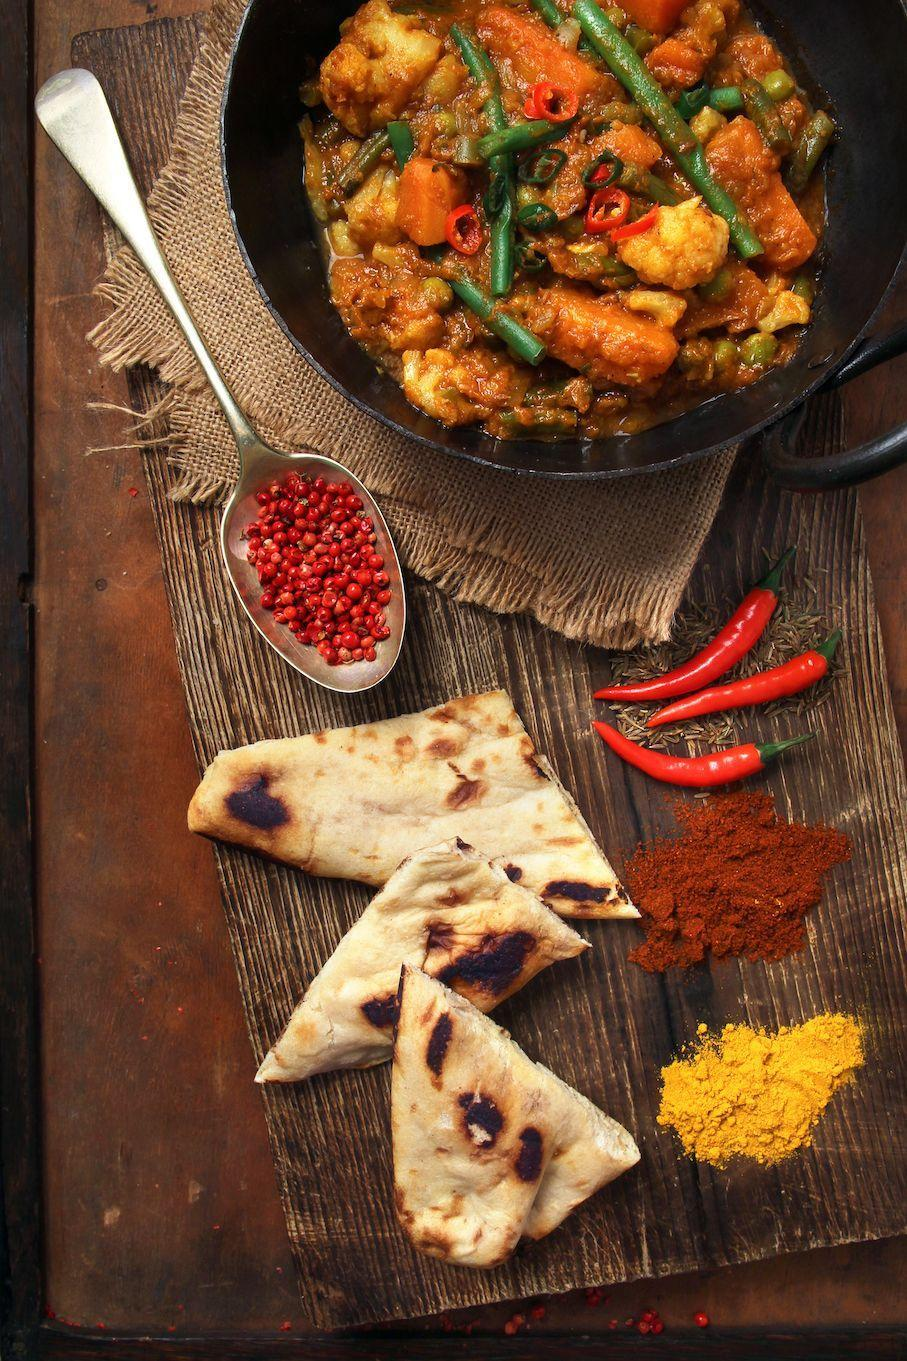 """<p>Learn how to make hundreds of delicious Indian dishes using just nine repeatable cooking patterns.</p><p><strong>Duration</strong>: Four hours on-demand video</p><p>£11.99</p><p><a class=""""link rapid-noclick-resp"""" href=""""https://go.redirectingat.com?id=127X1599956&url=https%3A%2F%2Fwww.udemy.com%2Fcourse%2Findianculinaryworld%2F&sref=https%3A%2F%2Fwww.elle.com%2Fuk%2Flife-and-culture%2Fg32077844%2Fbest-online-learning-courses%2F"""" rel=""""nofollow noopener"""" target=""""_blank"""" data-ylk=""""slk:BUY NOW"""">BUY NOW </a></p>"""